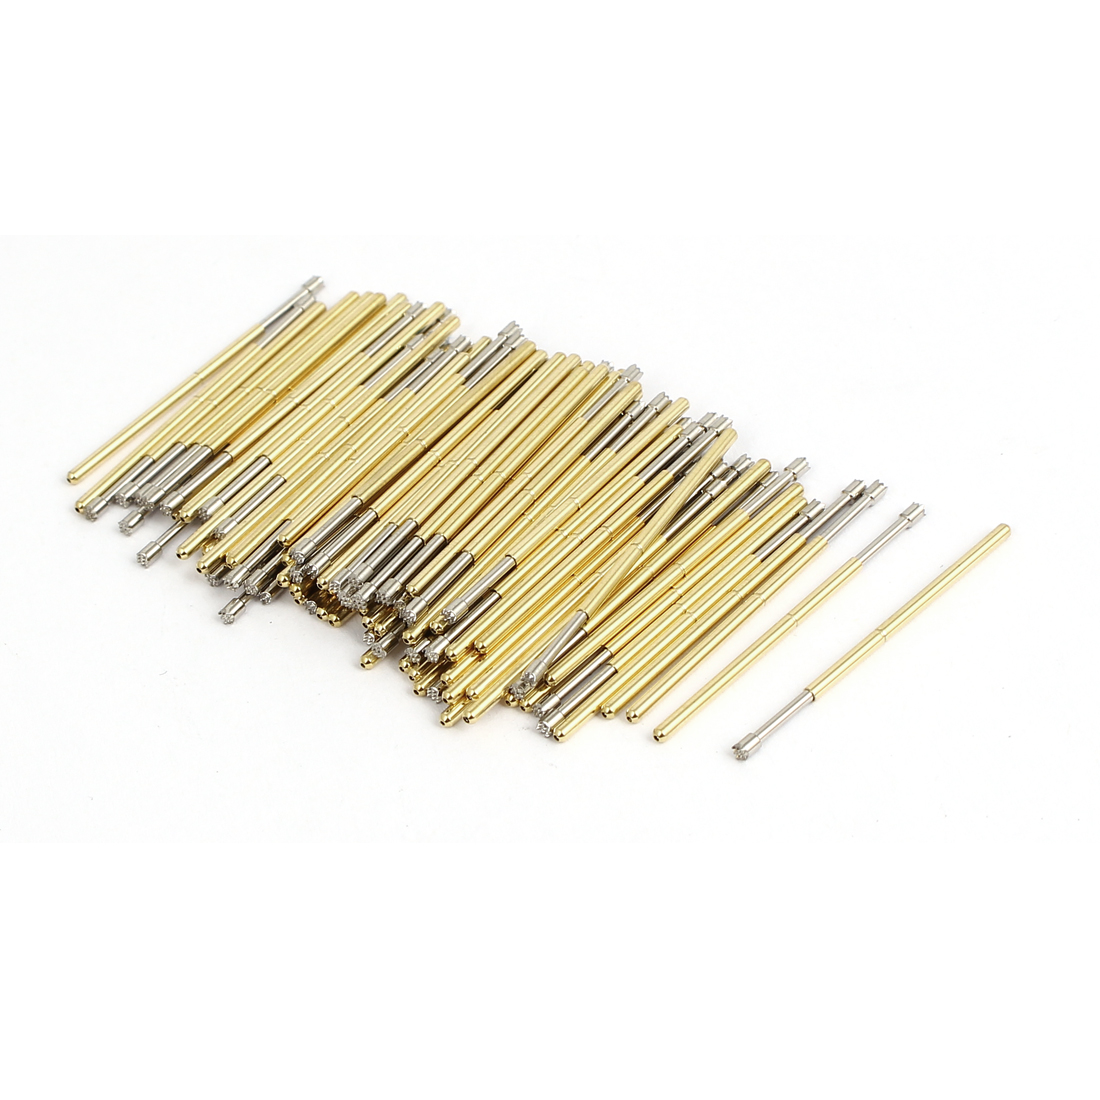 P100H 33mm Long Crown Tip Spring Loaded Contact Test Probe Pin Gold Tone 100Pcs